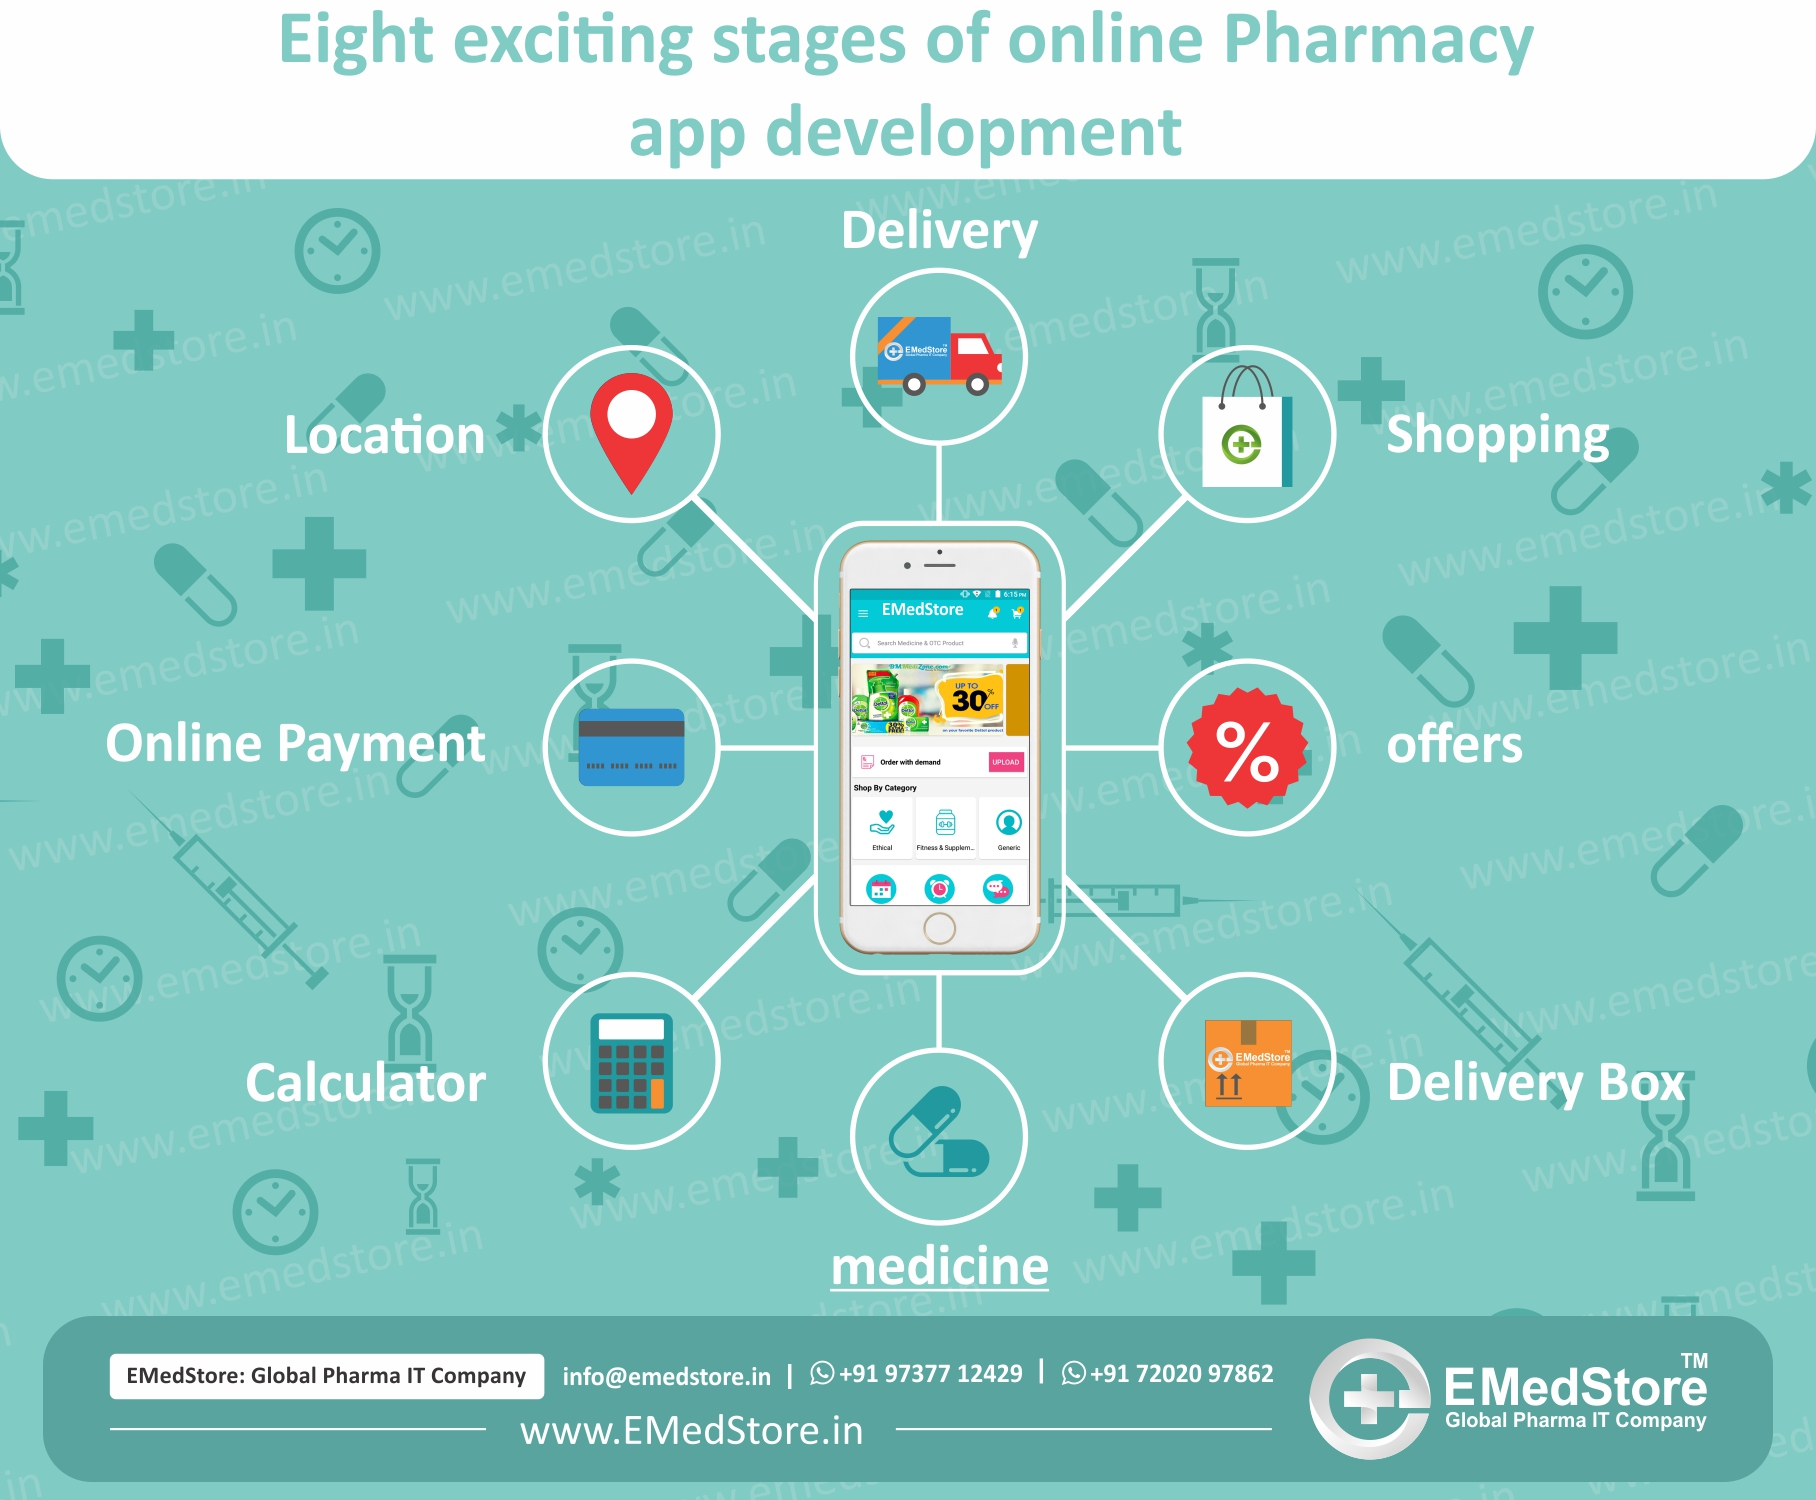 10 Amazing facts to know before developing an online pharmacy